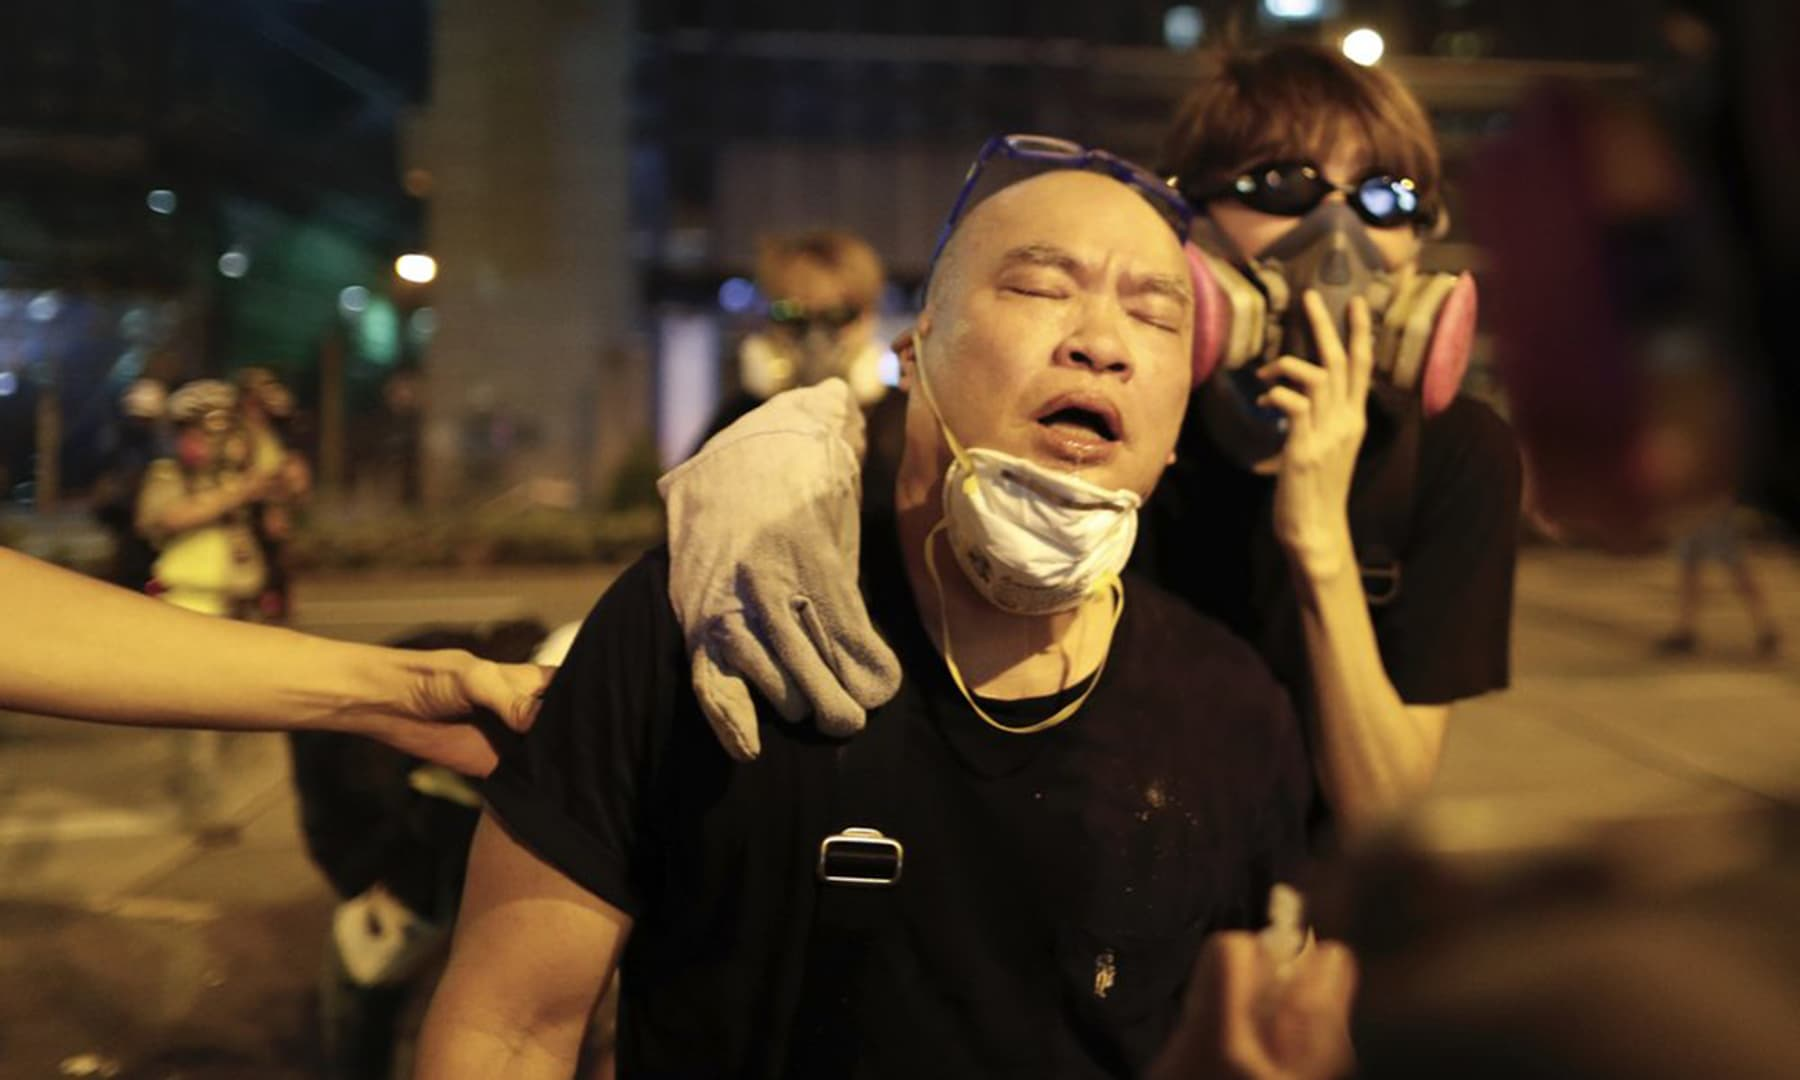 A protester is overcome by tear gas near the Shum Shui Po police station in Hong Kong on Aug 14, 2019. — AP